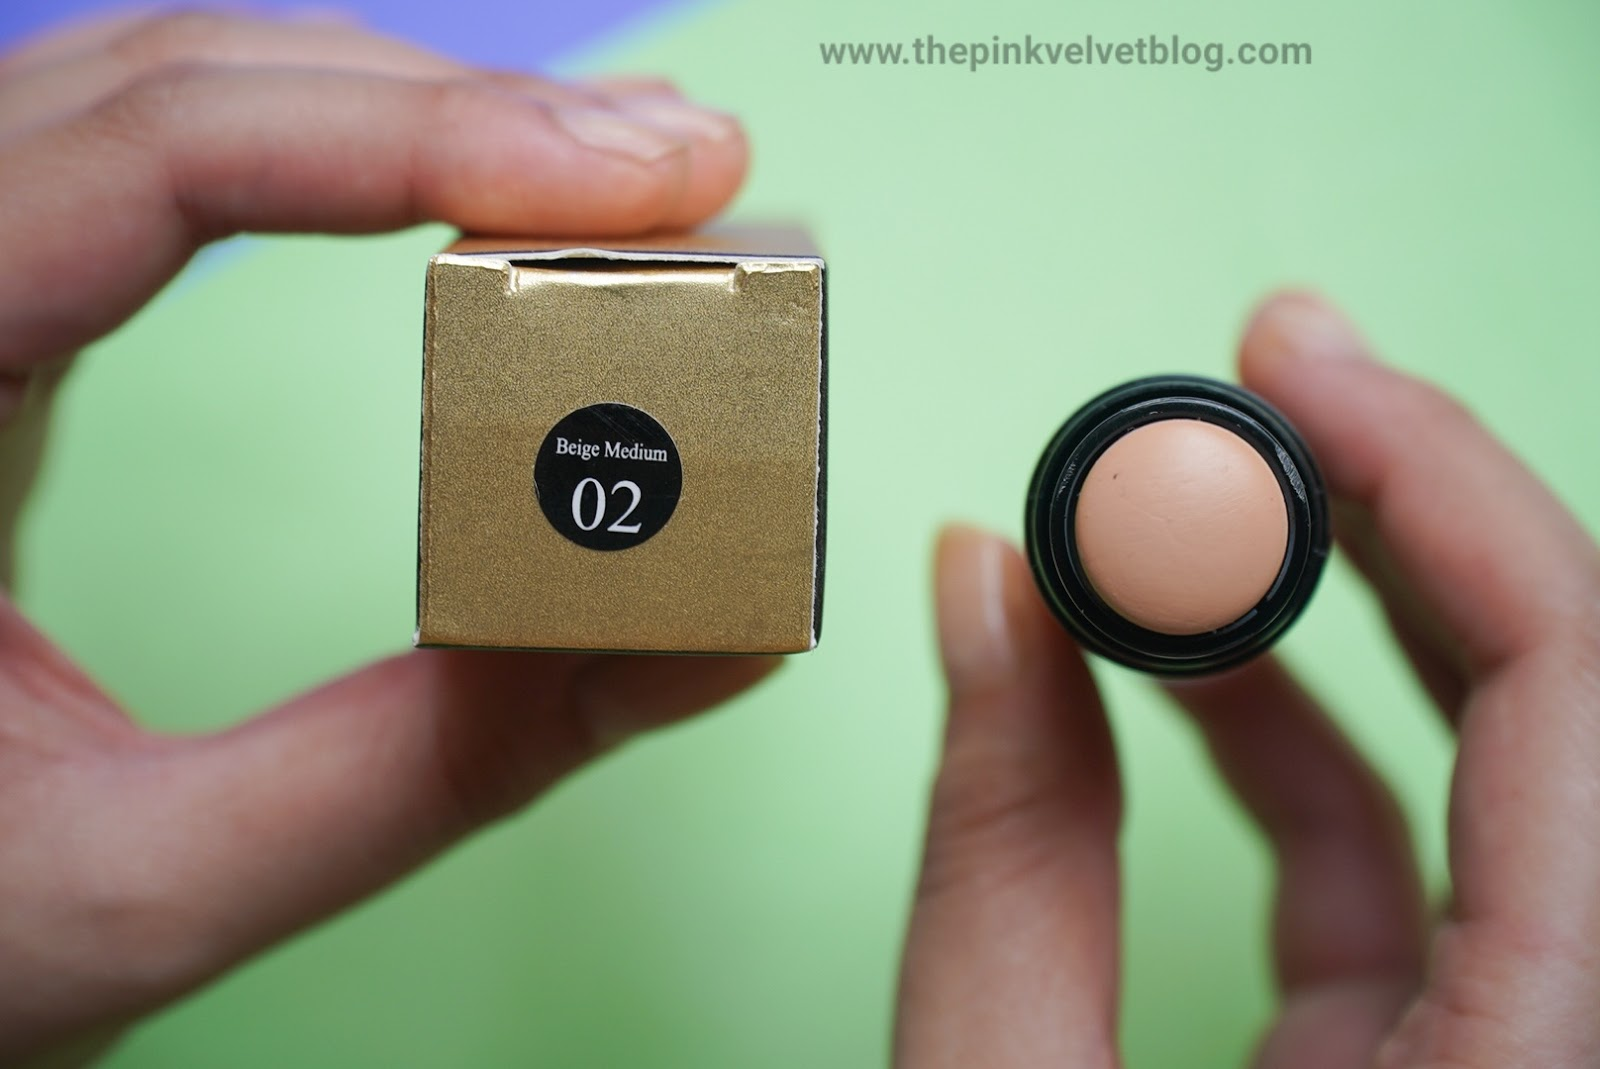 C.A.L Concealer Stick Review and Swatches - Shade Beige Medium 02